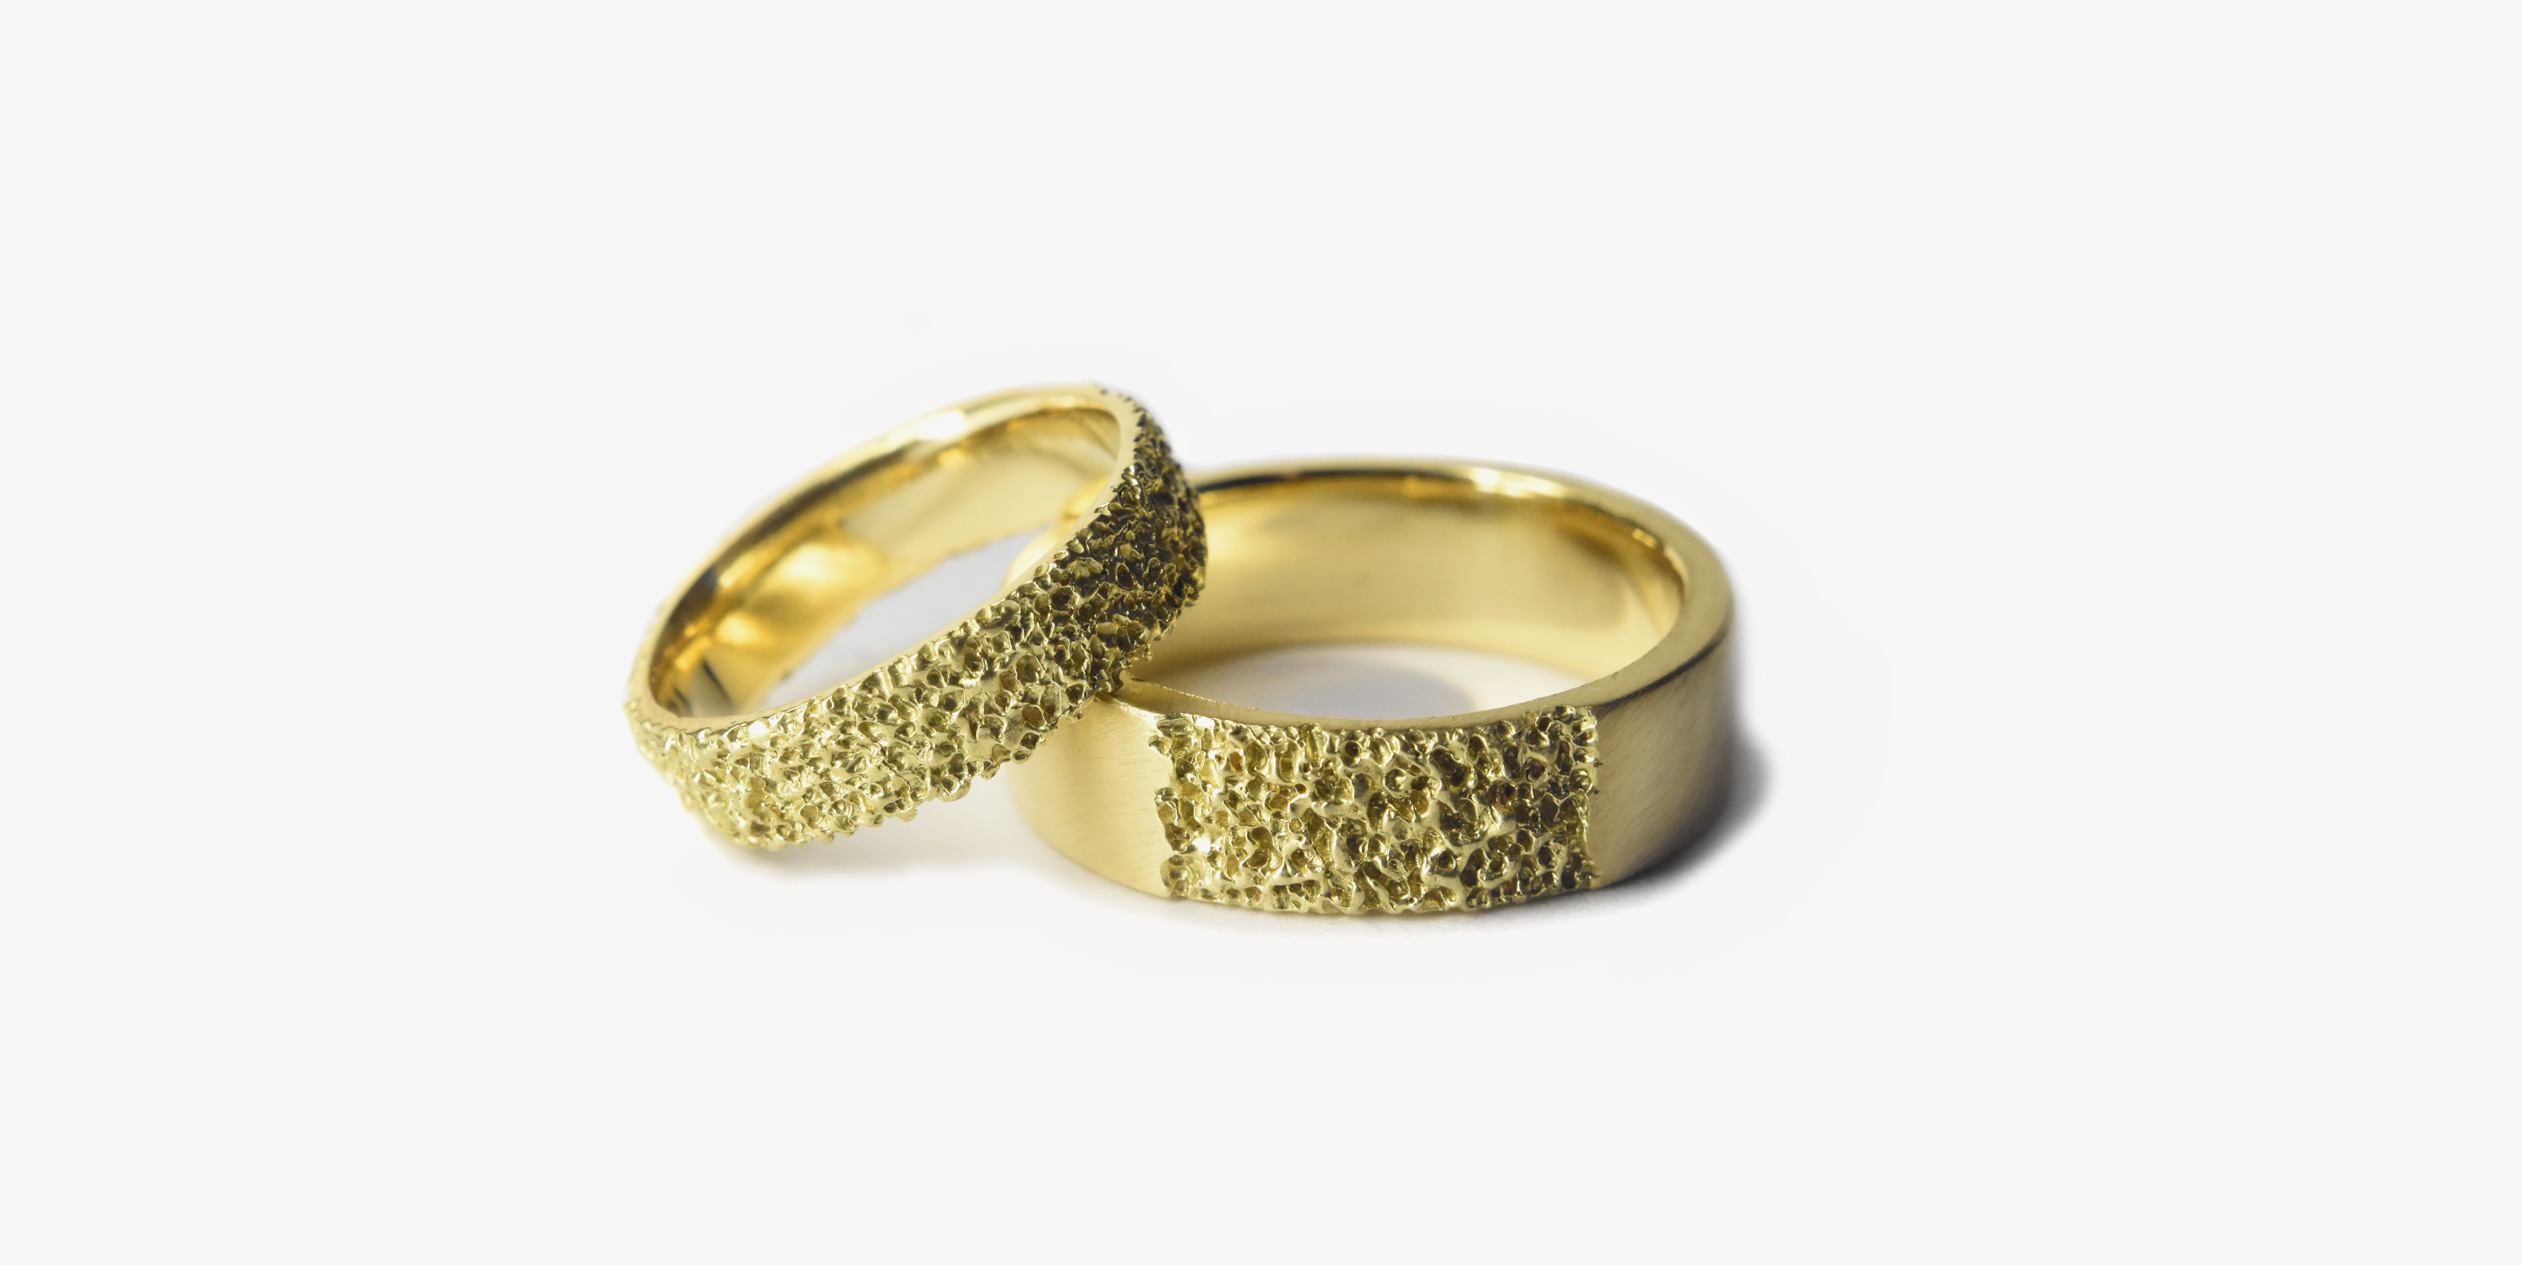 welfe jewellery eroded gold wedding rings